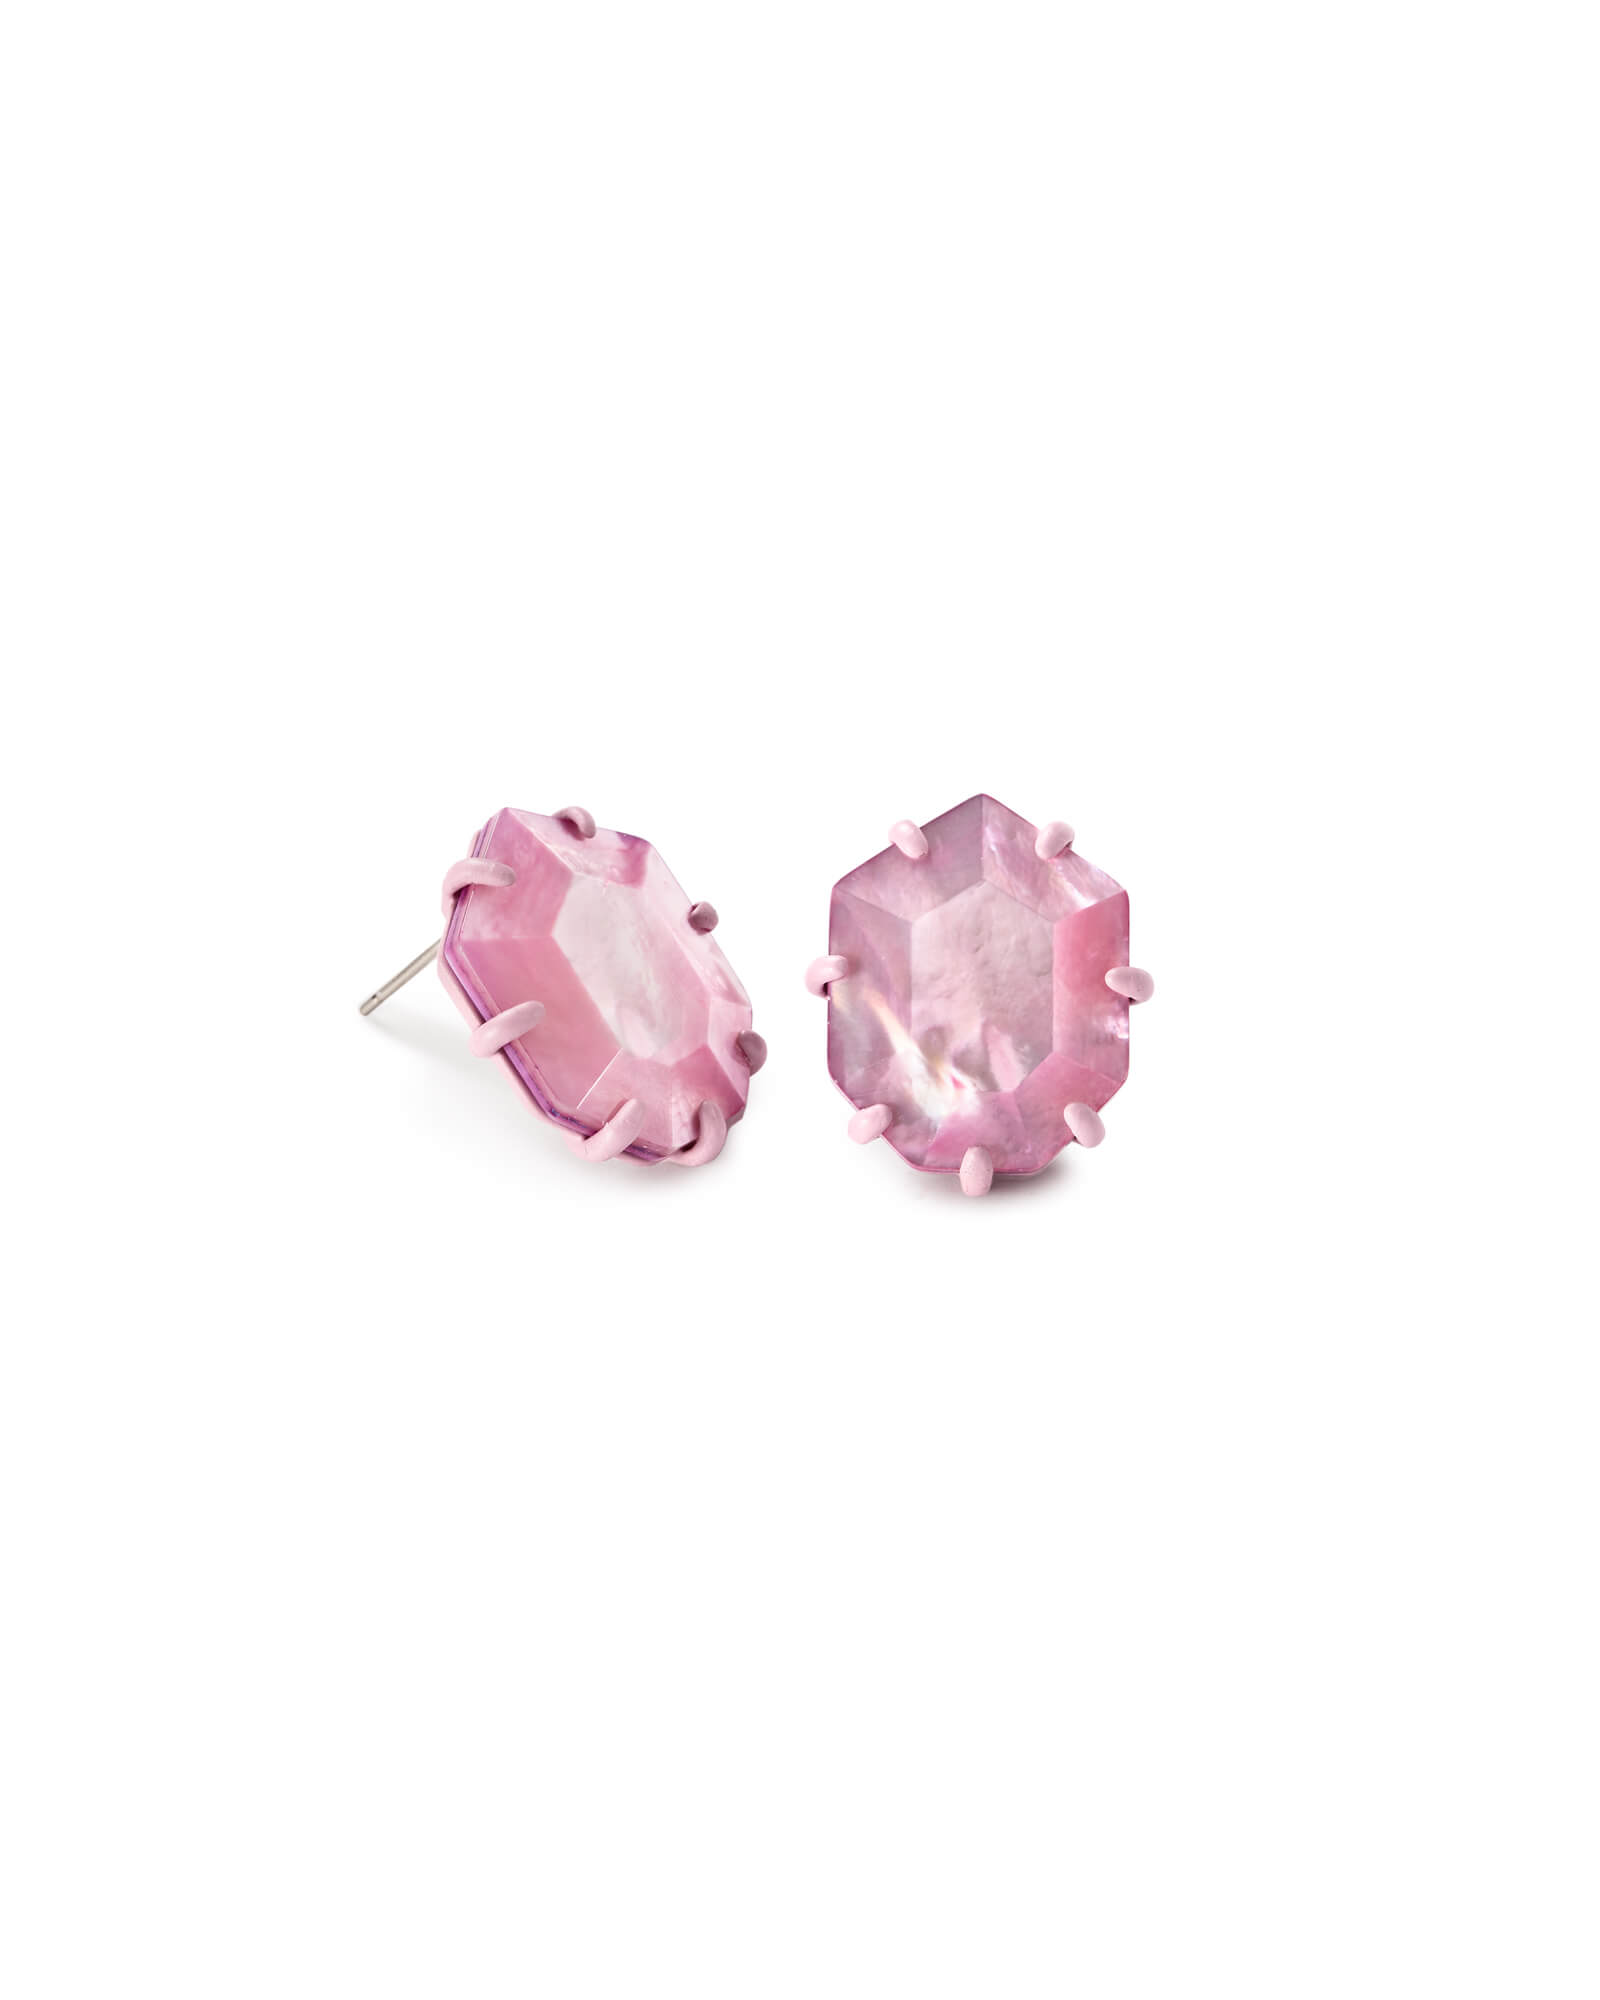 Morgan Matte Stud Earrings in Lilac Mother-of-Pearl